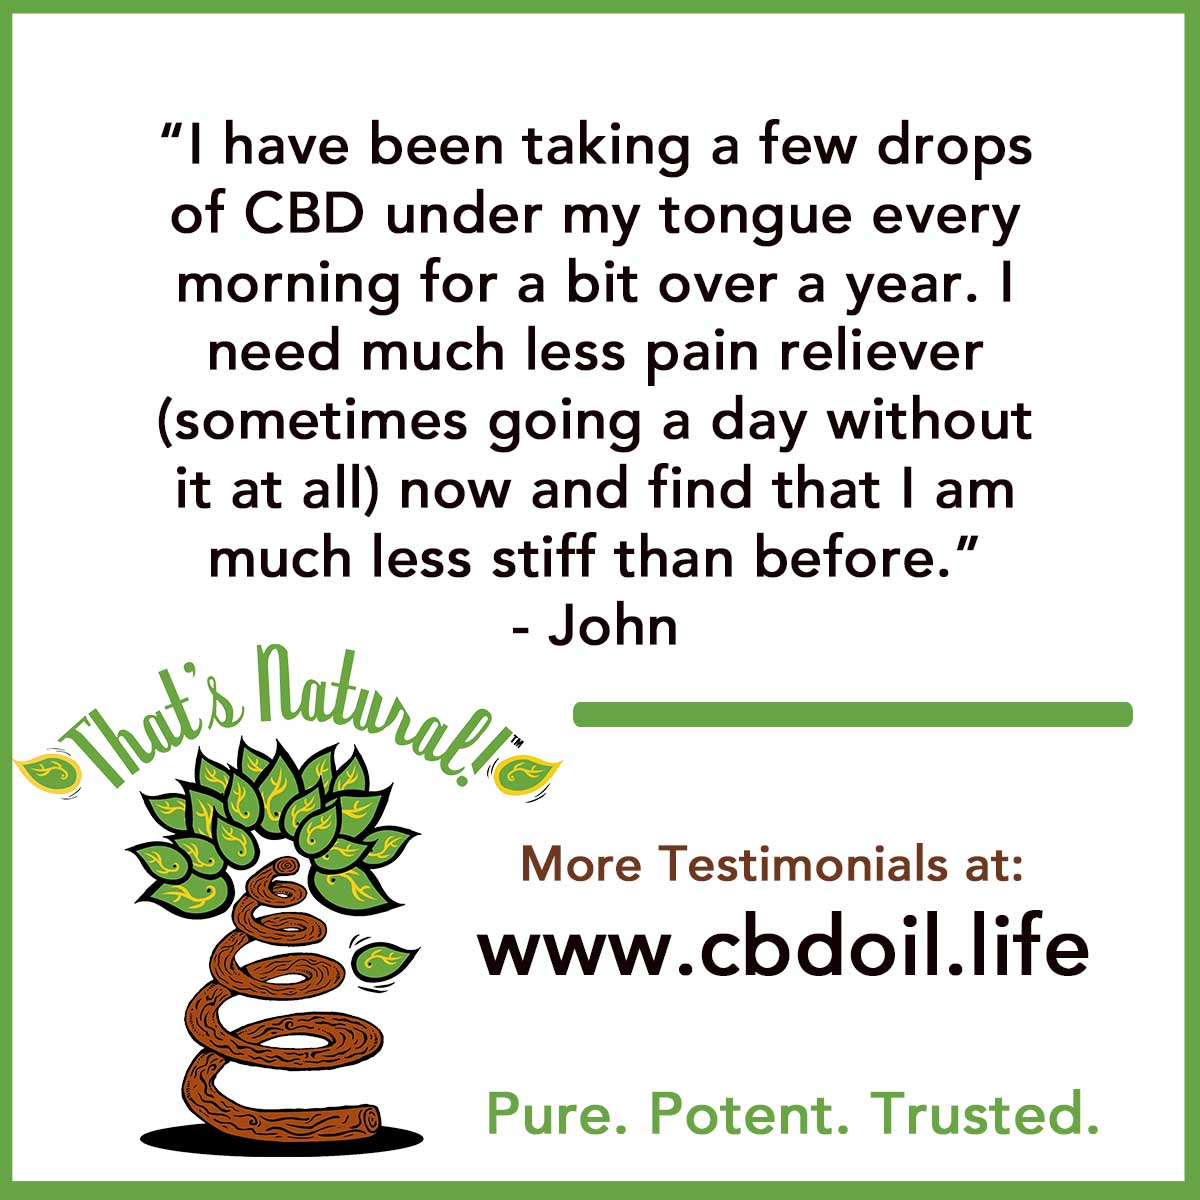 Testimonial for CBD Hemp Oil 13 (John - NM)